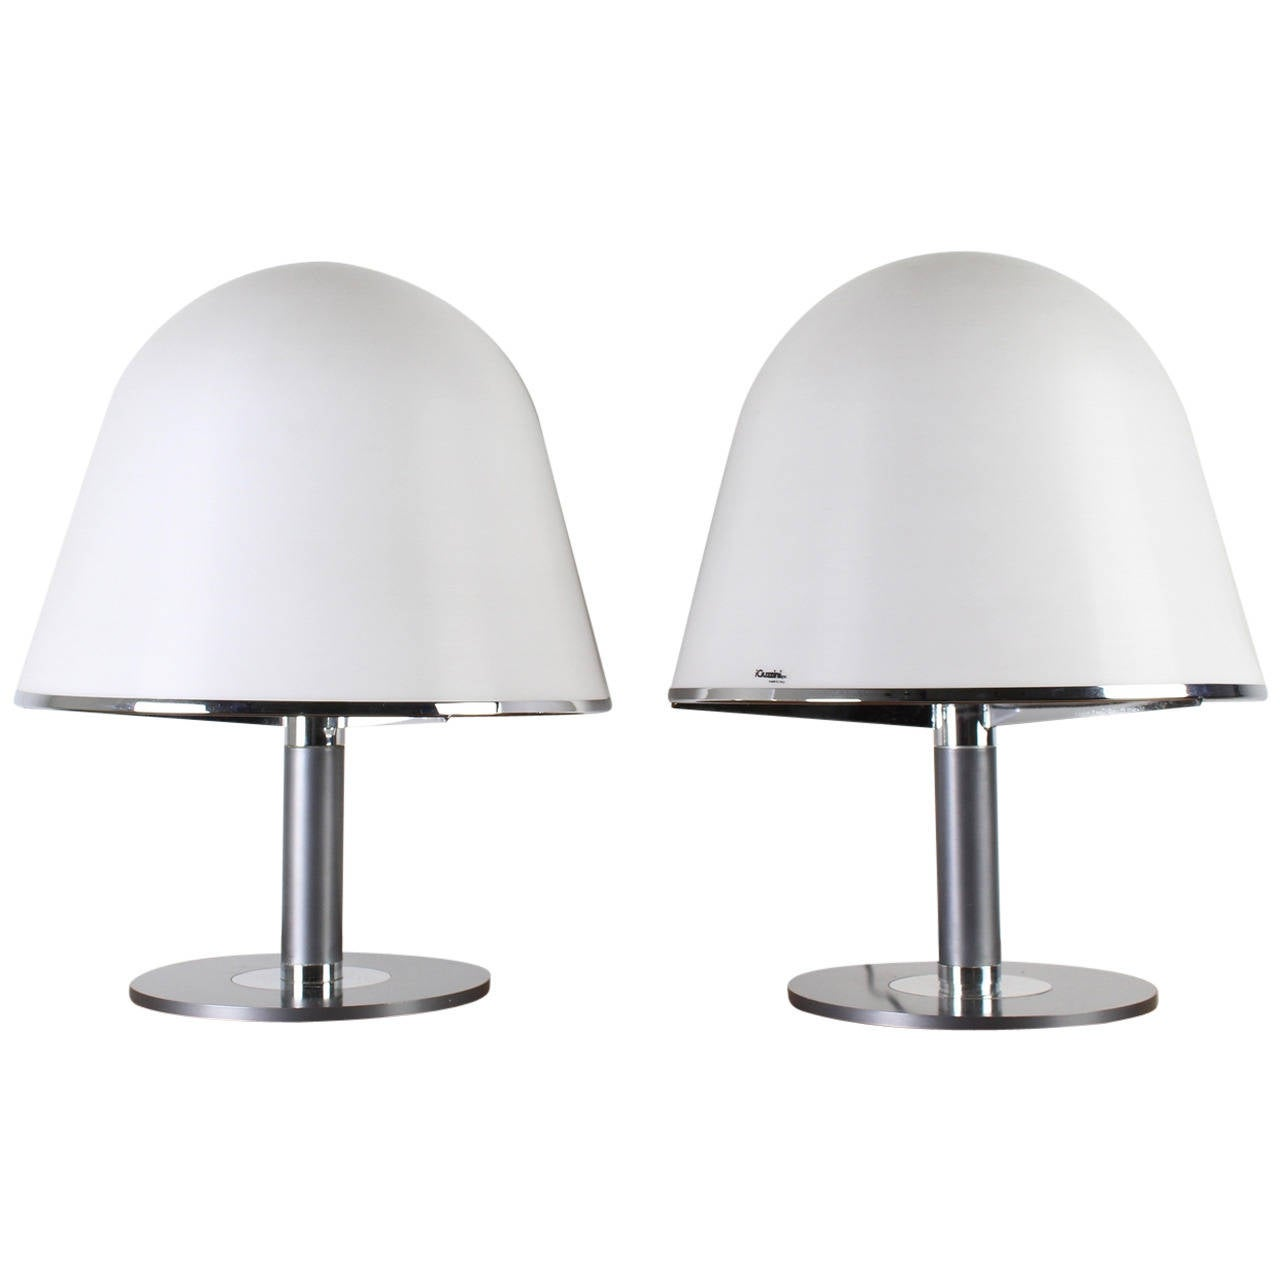 Set Of Two Table Lamps Set Of Two Mushroom Iguzzini Table Lamps By Harvey Guzzini For